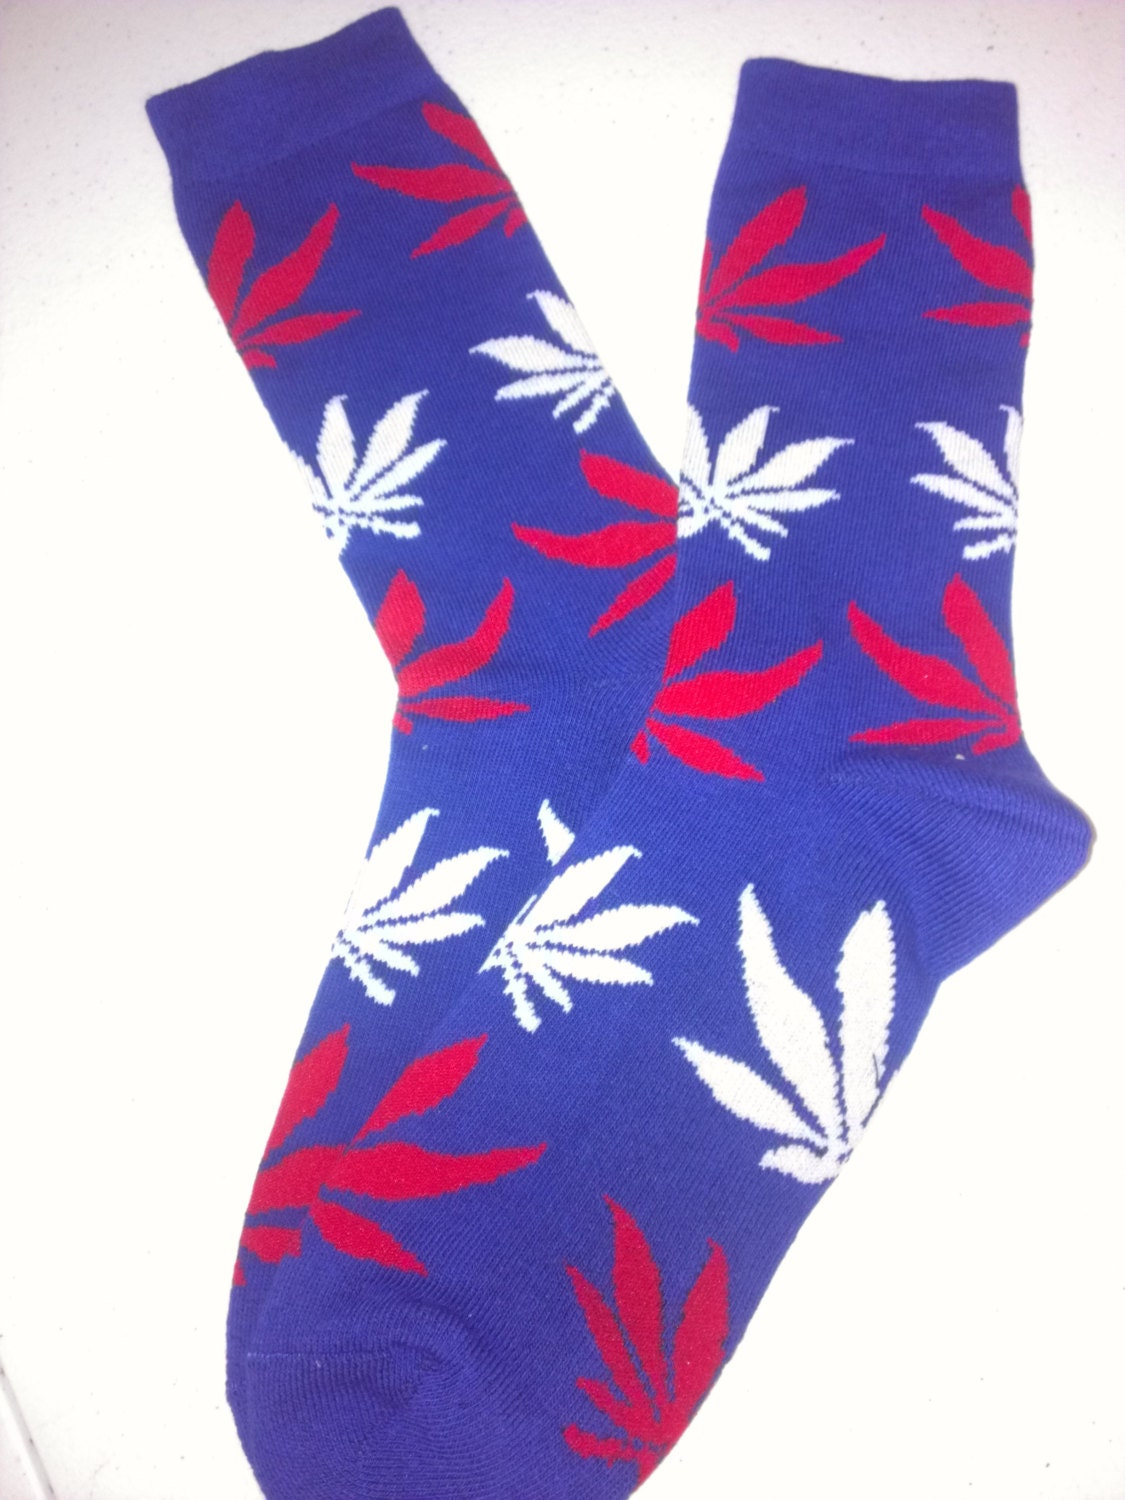 items similar to weed socks quot presidentialquot colorway not